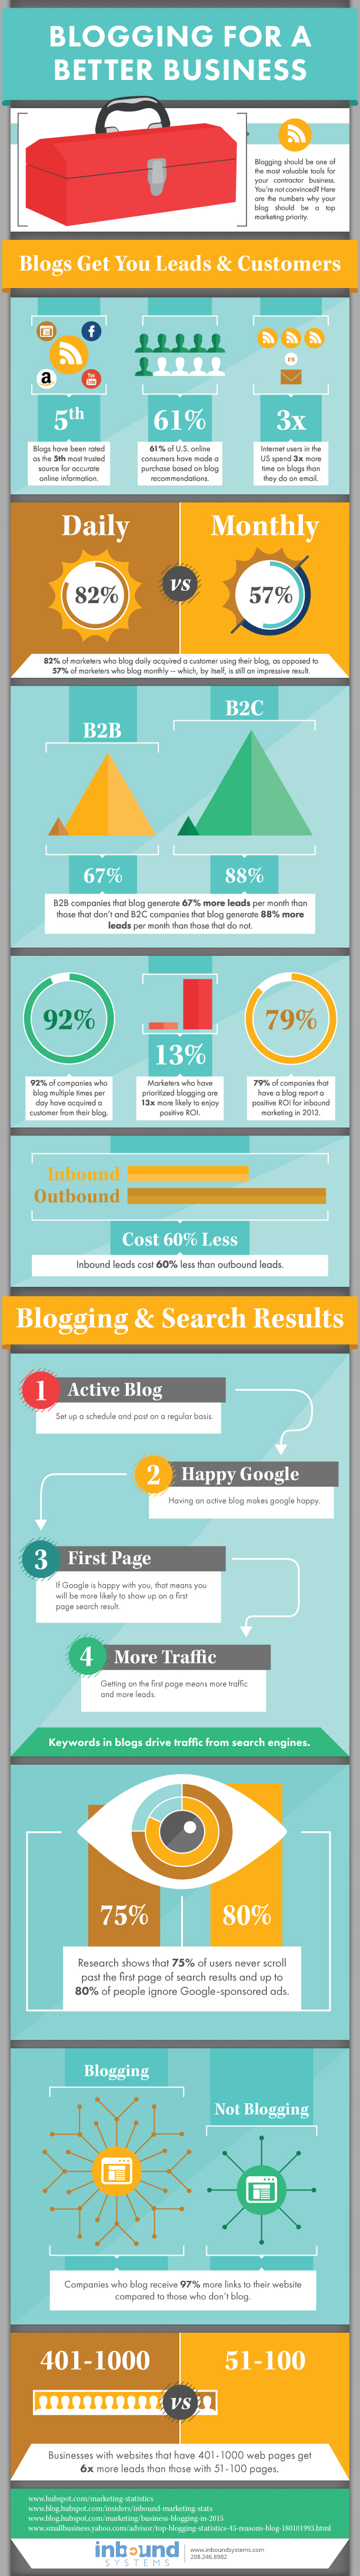 inbound systems blogging infographic1 1